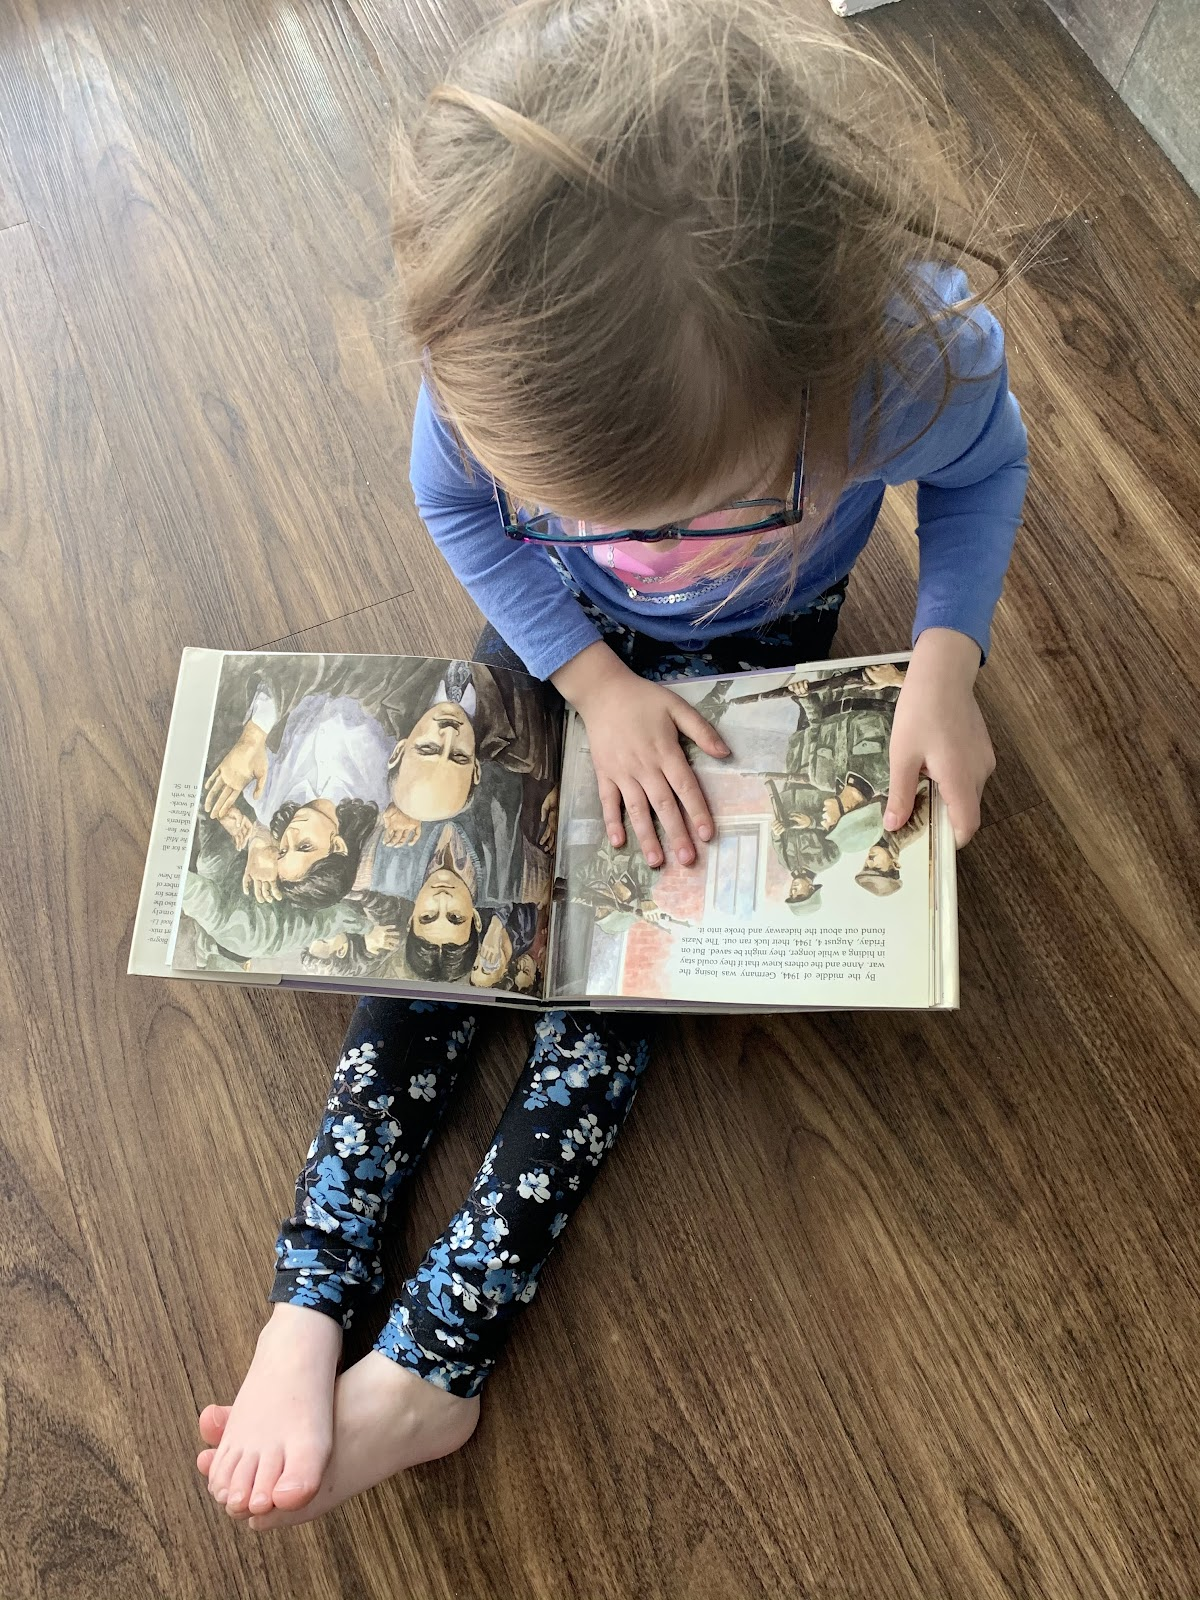 even after your four year old is reading fluently, picture books are important to comprehension